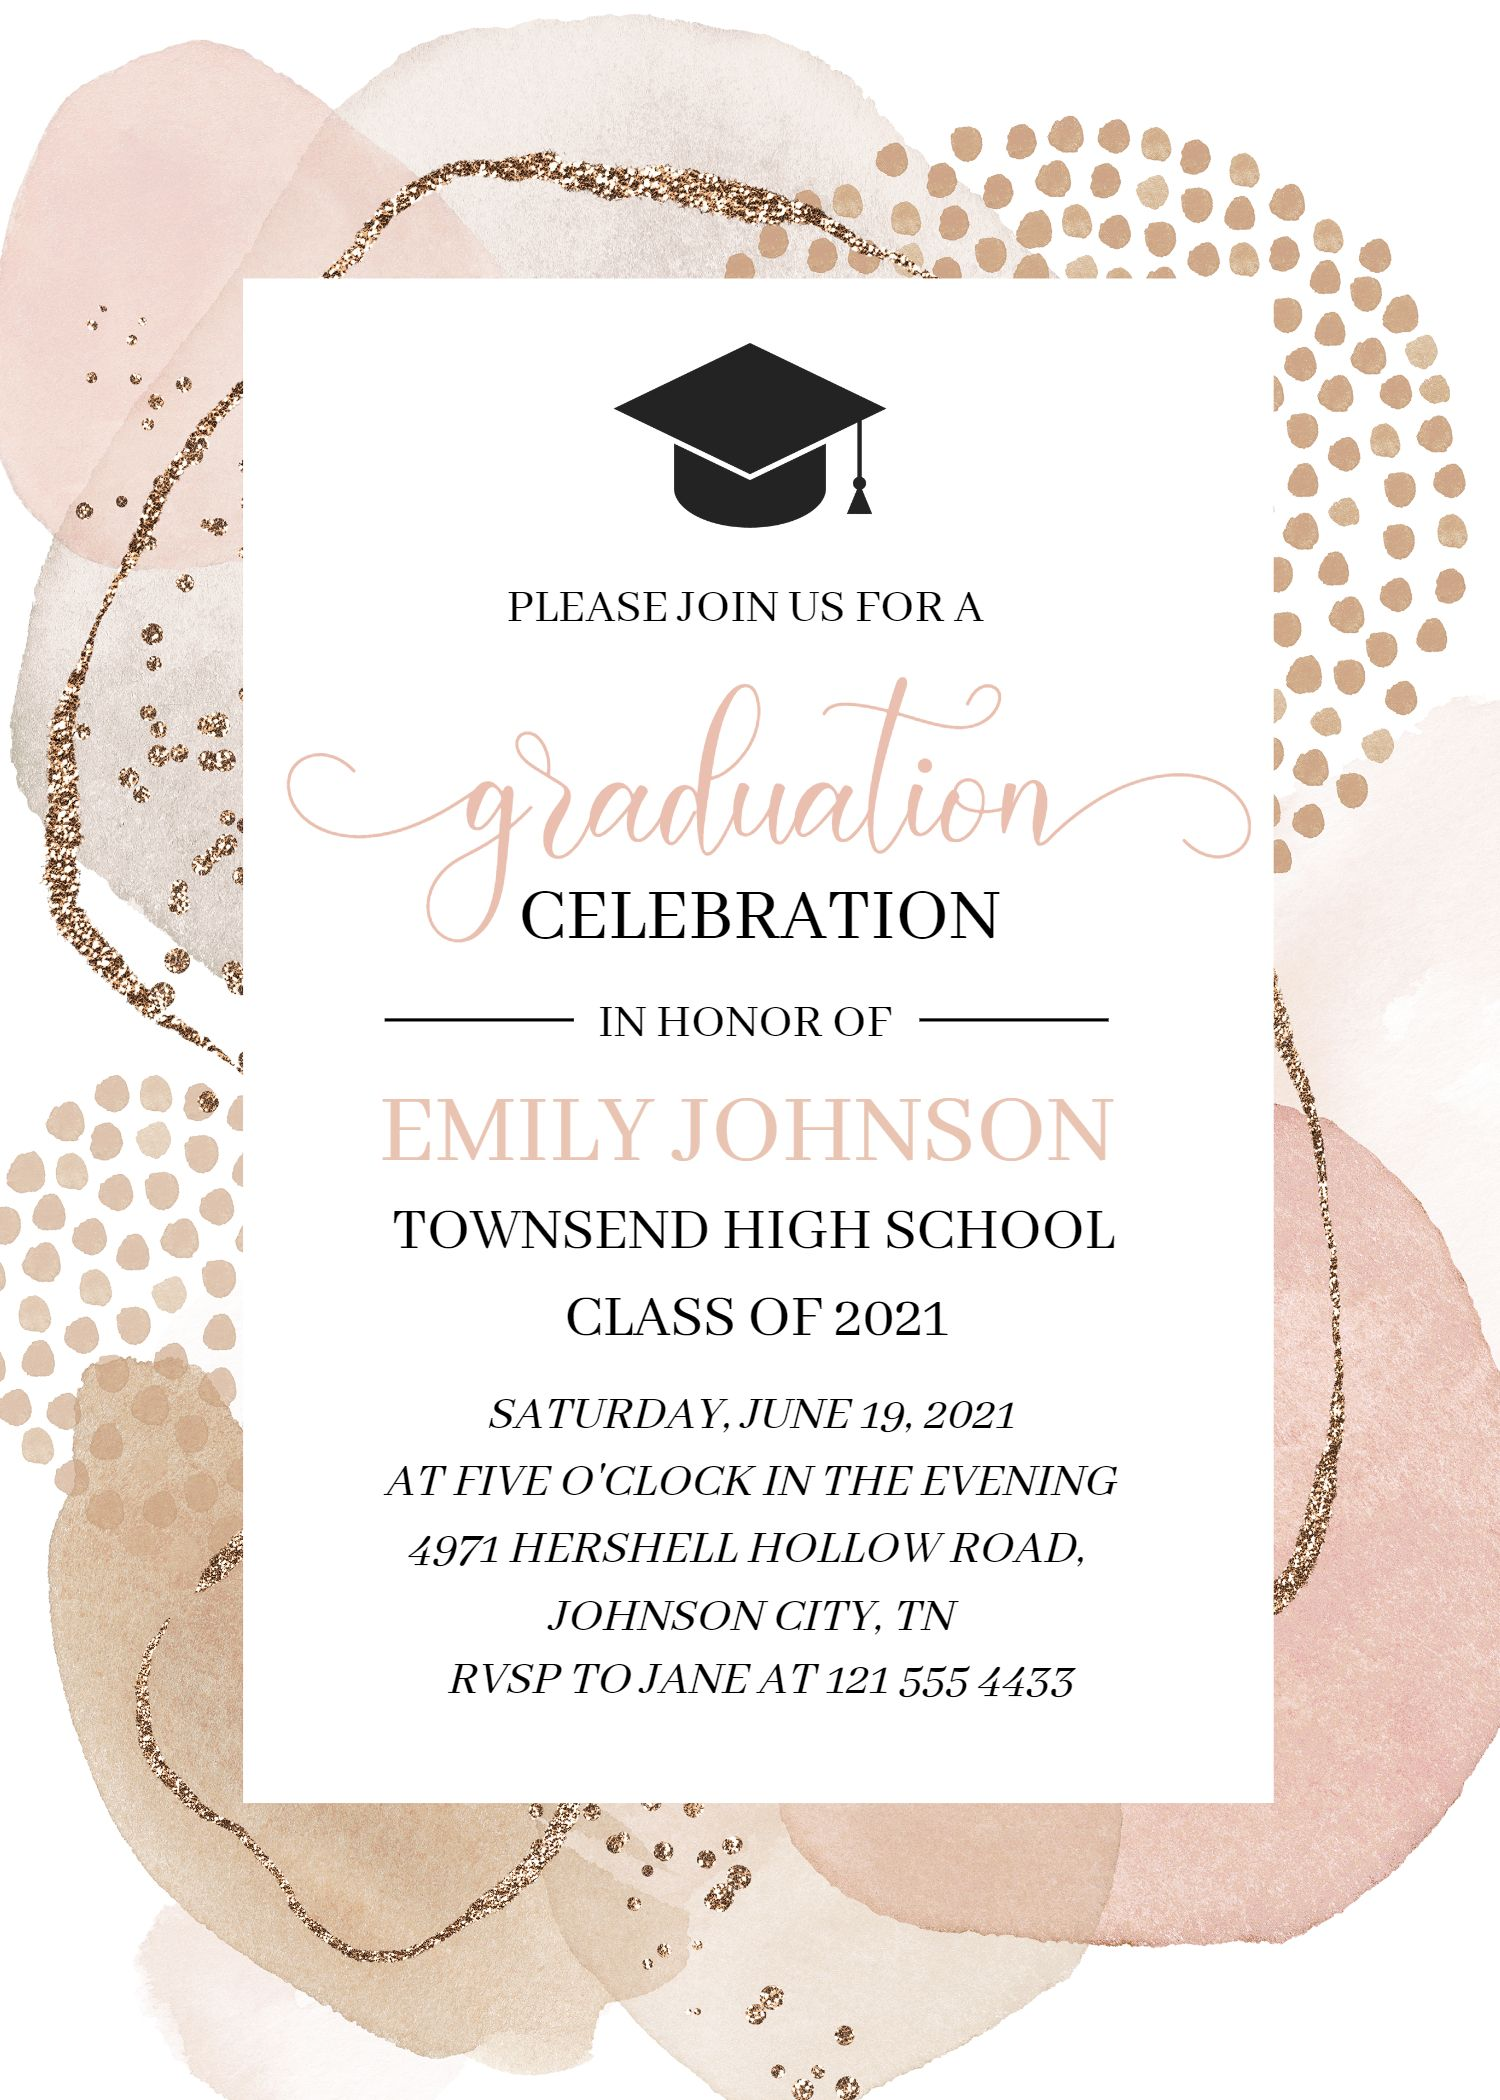 Abstract Graduation Invitation Template, Class 202